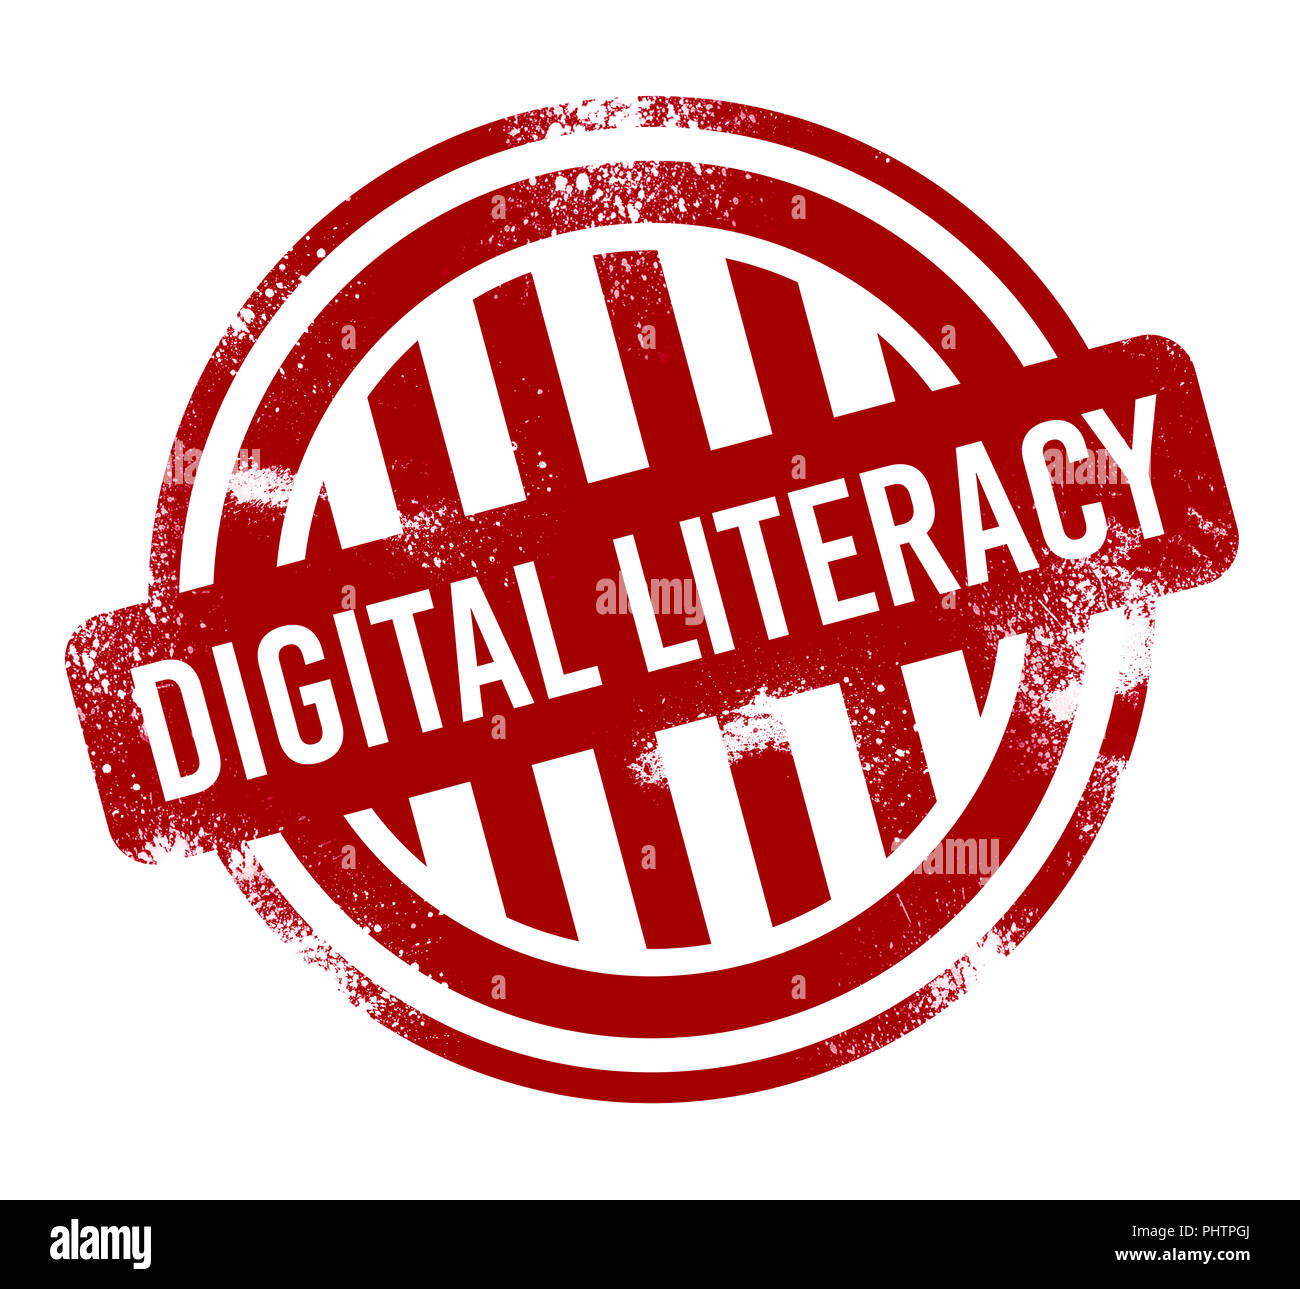 Digital Literacy - red grunge button, stamp - Stock Image